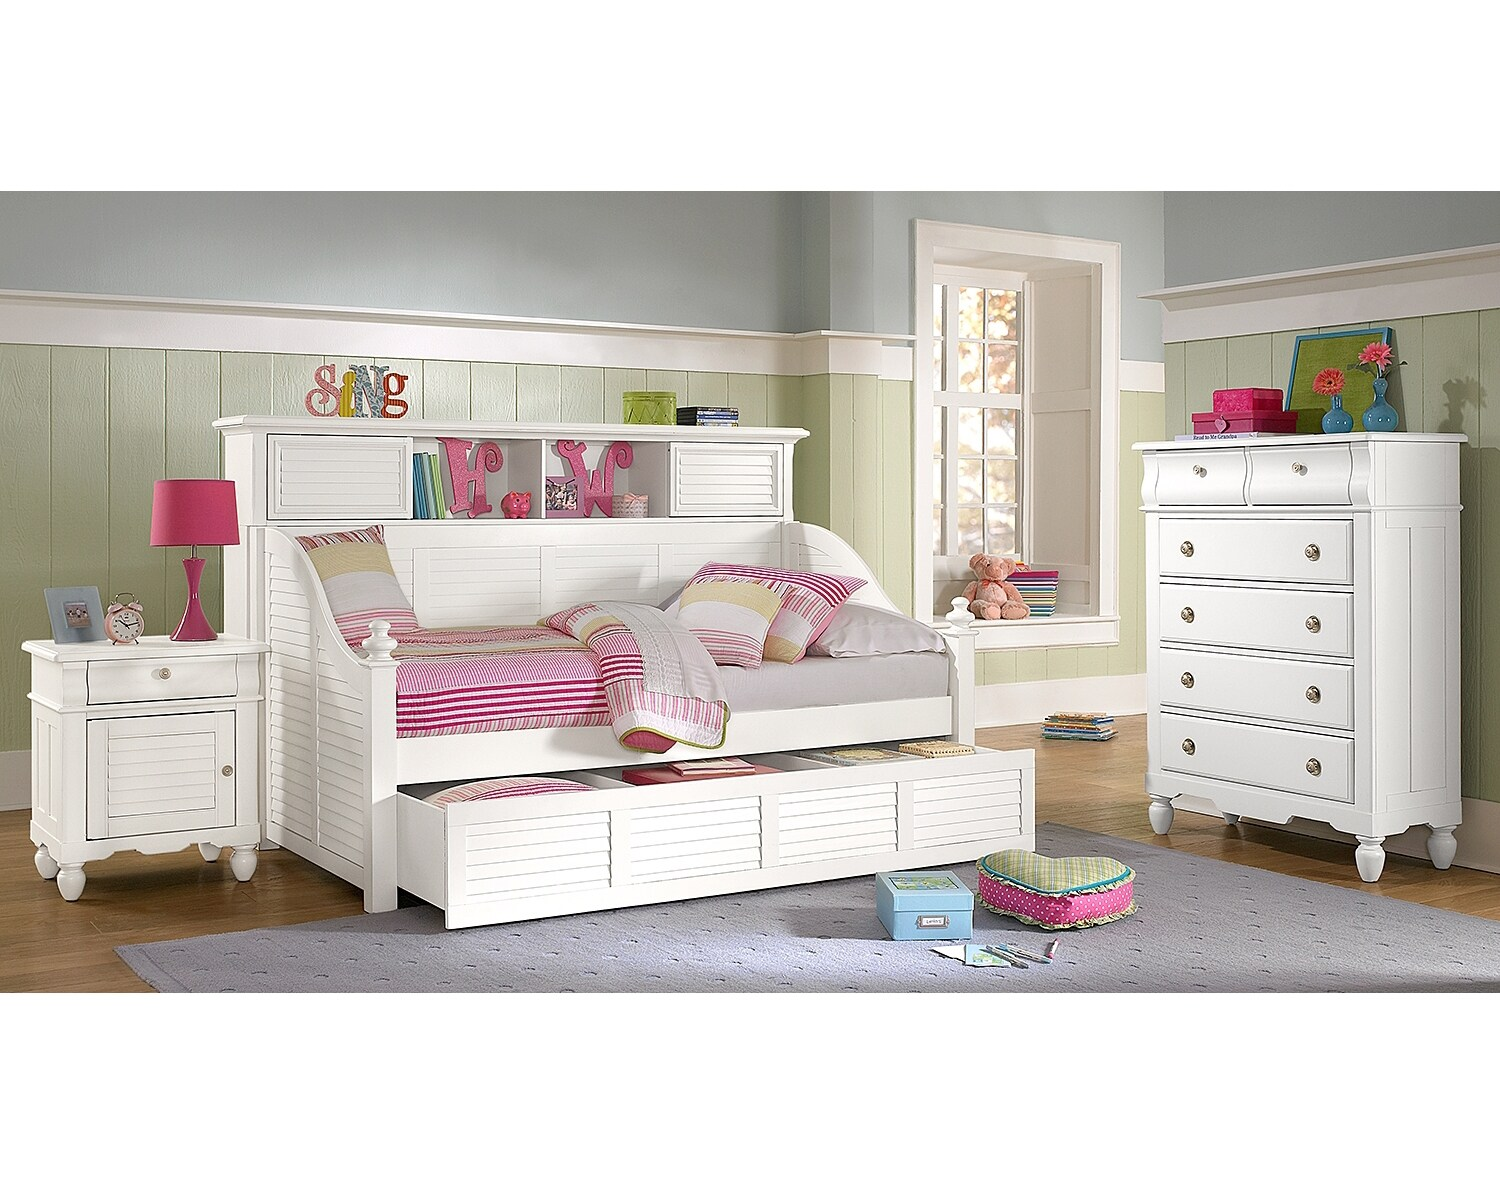 Kids Furniture - The Mayflower II White Collection - Bookcase Daybed with Trundle